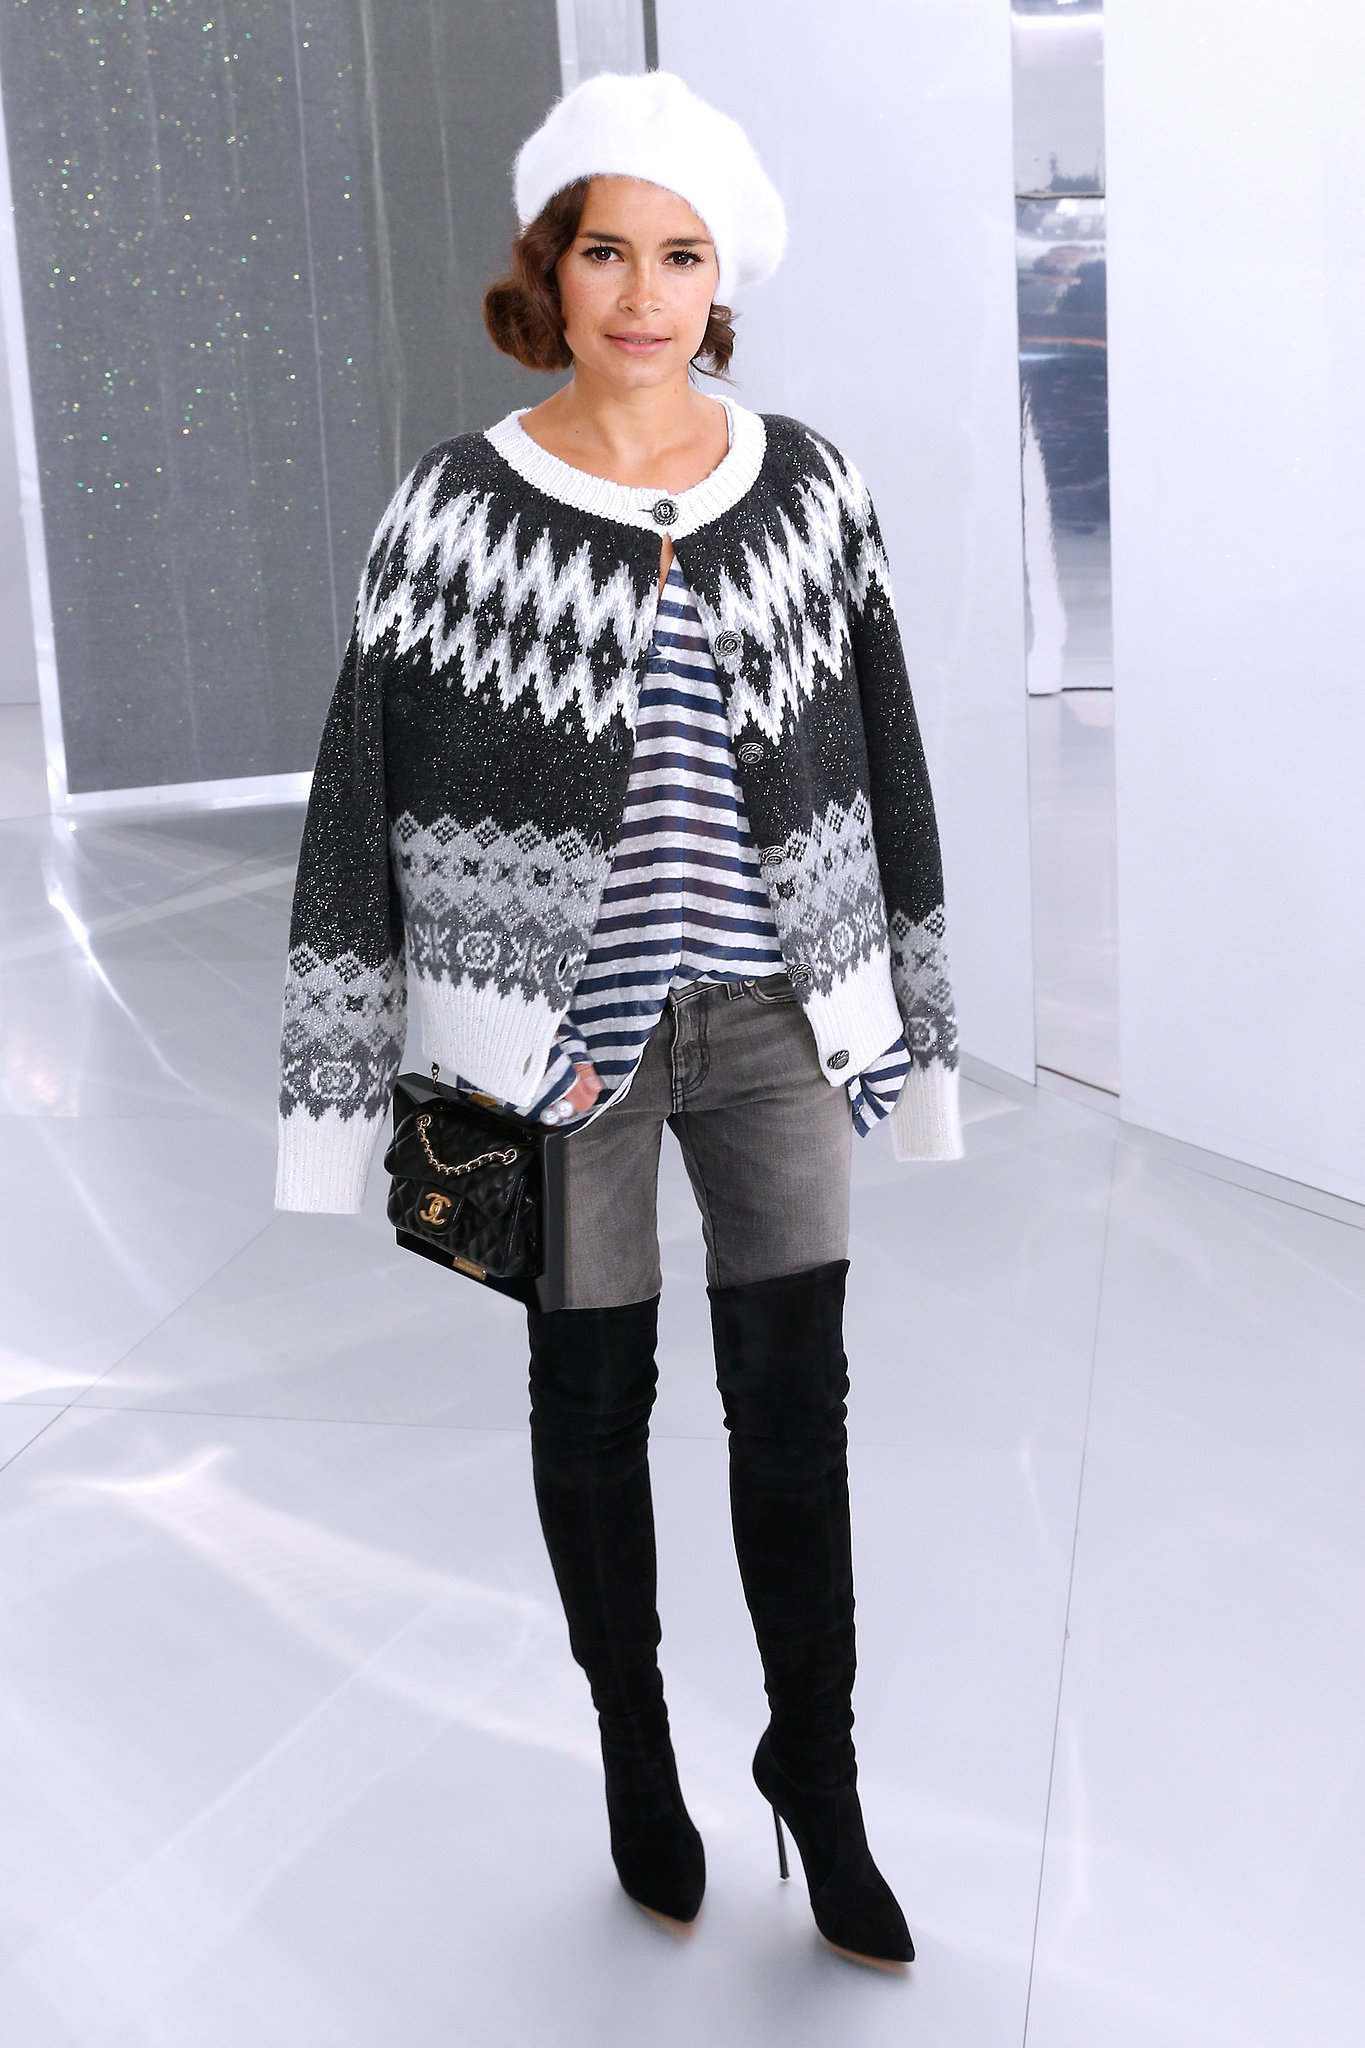 Miroslava Duma at the Chanel Paris Haute Couture show.